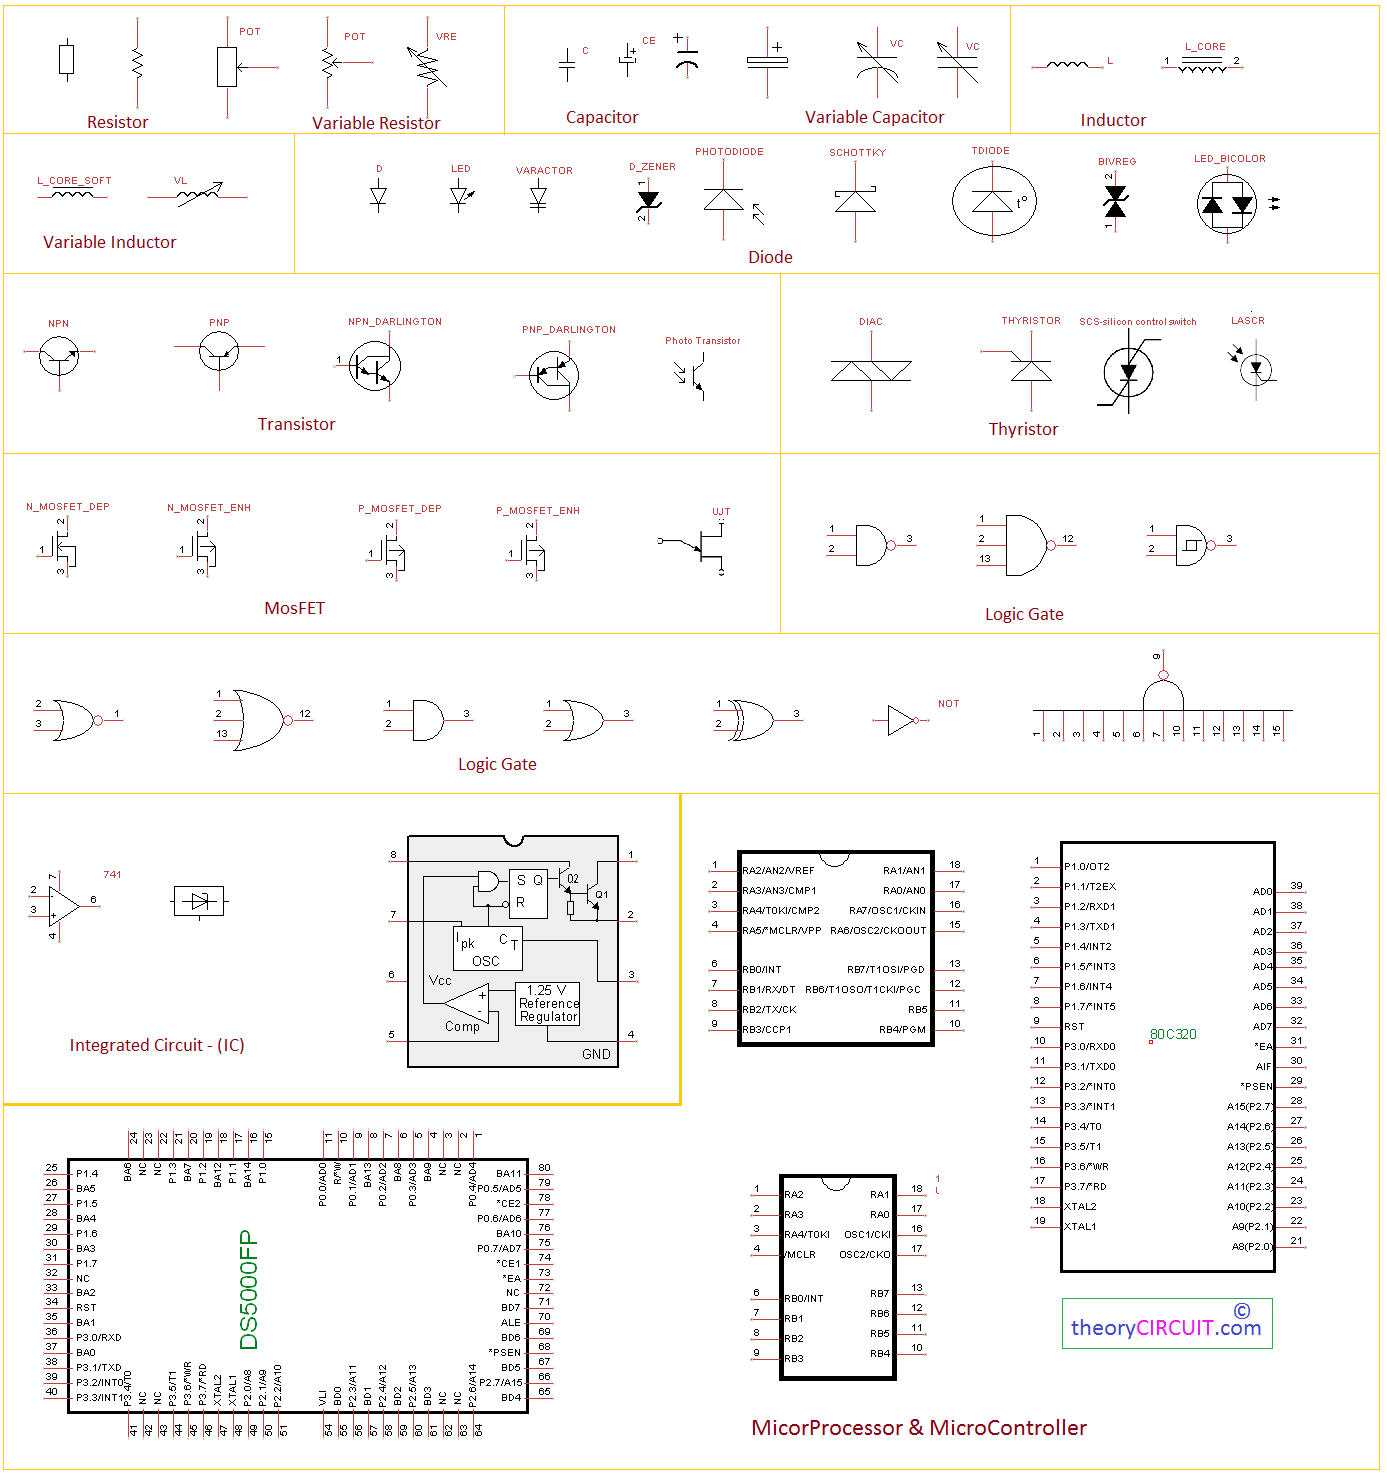 Electronic Components And Circuit Diagram Symbols As Well Fire Alarms Circuits Simple Also Schematic